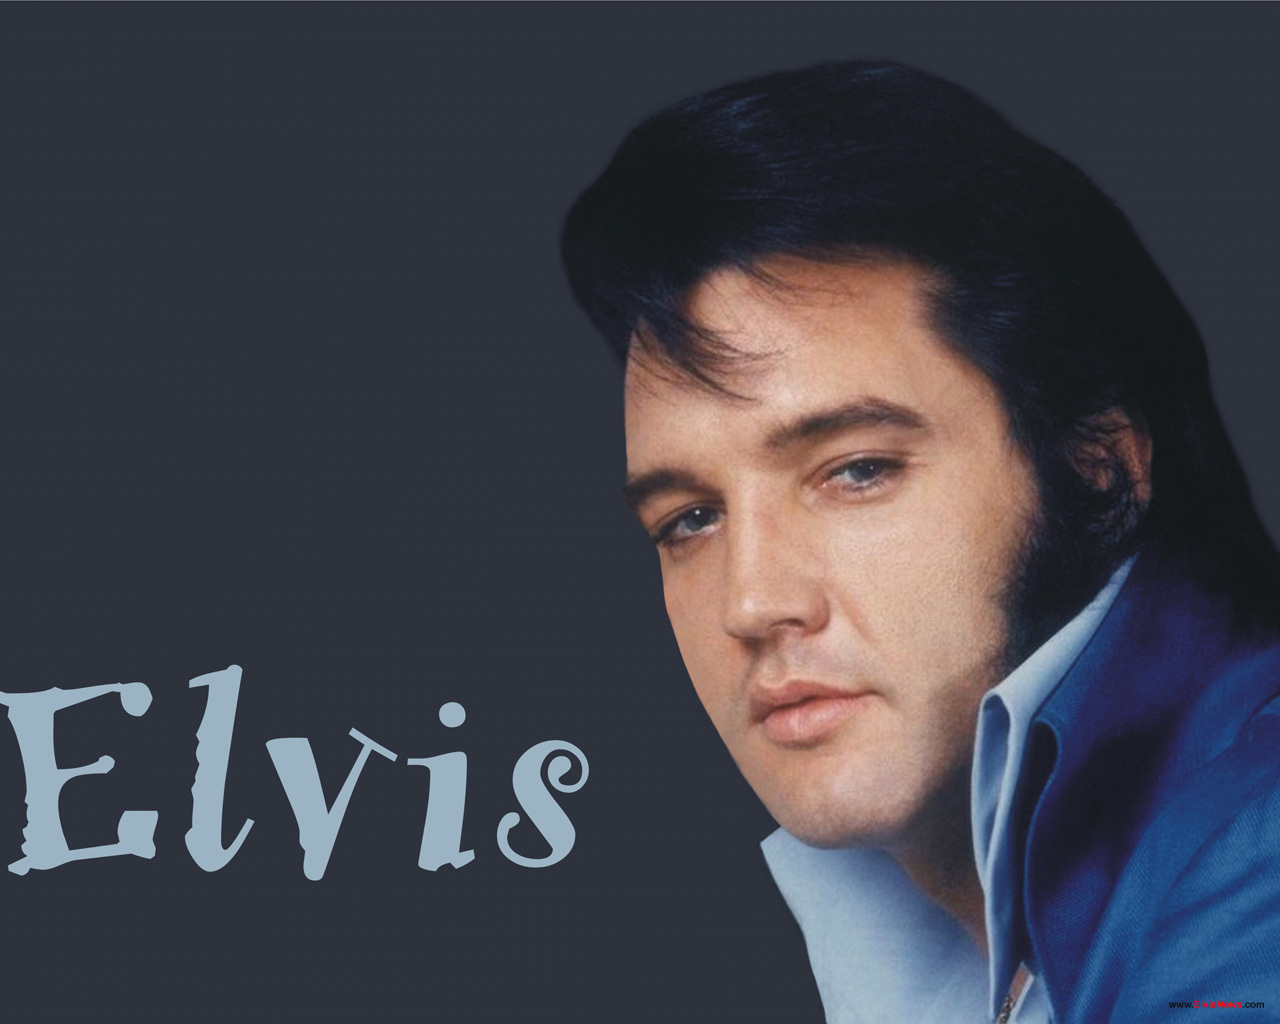 Free Download Elvis Elvis Presley Wallpaper 4790512 1280x1024